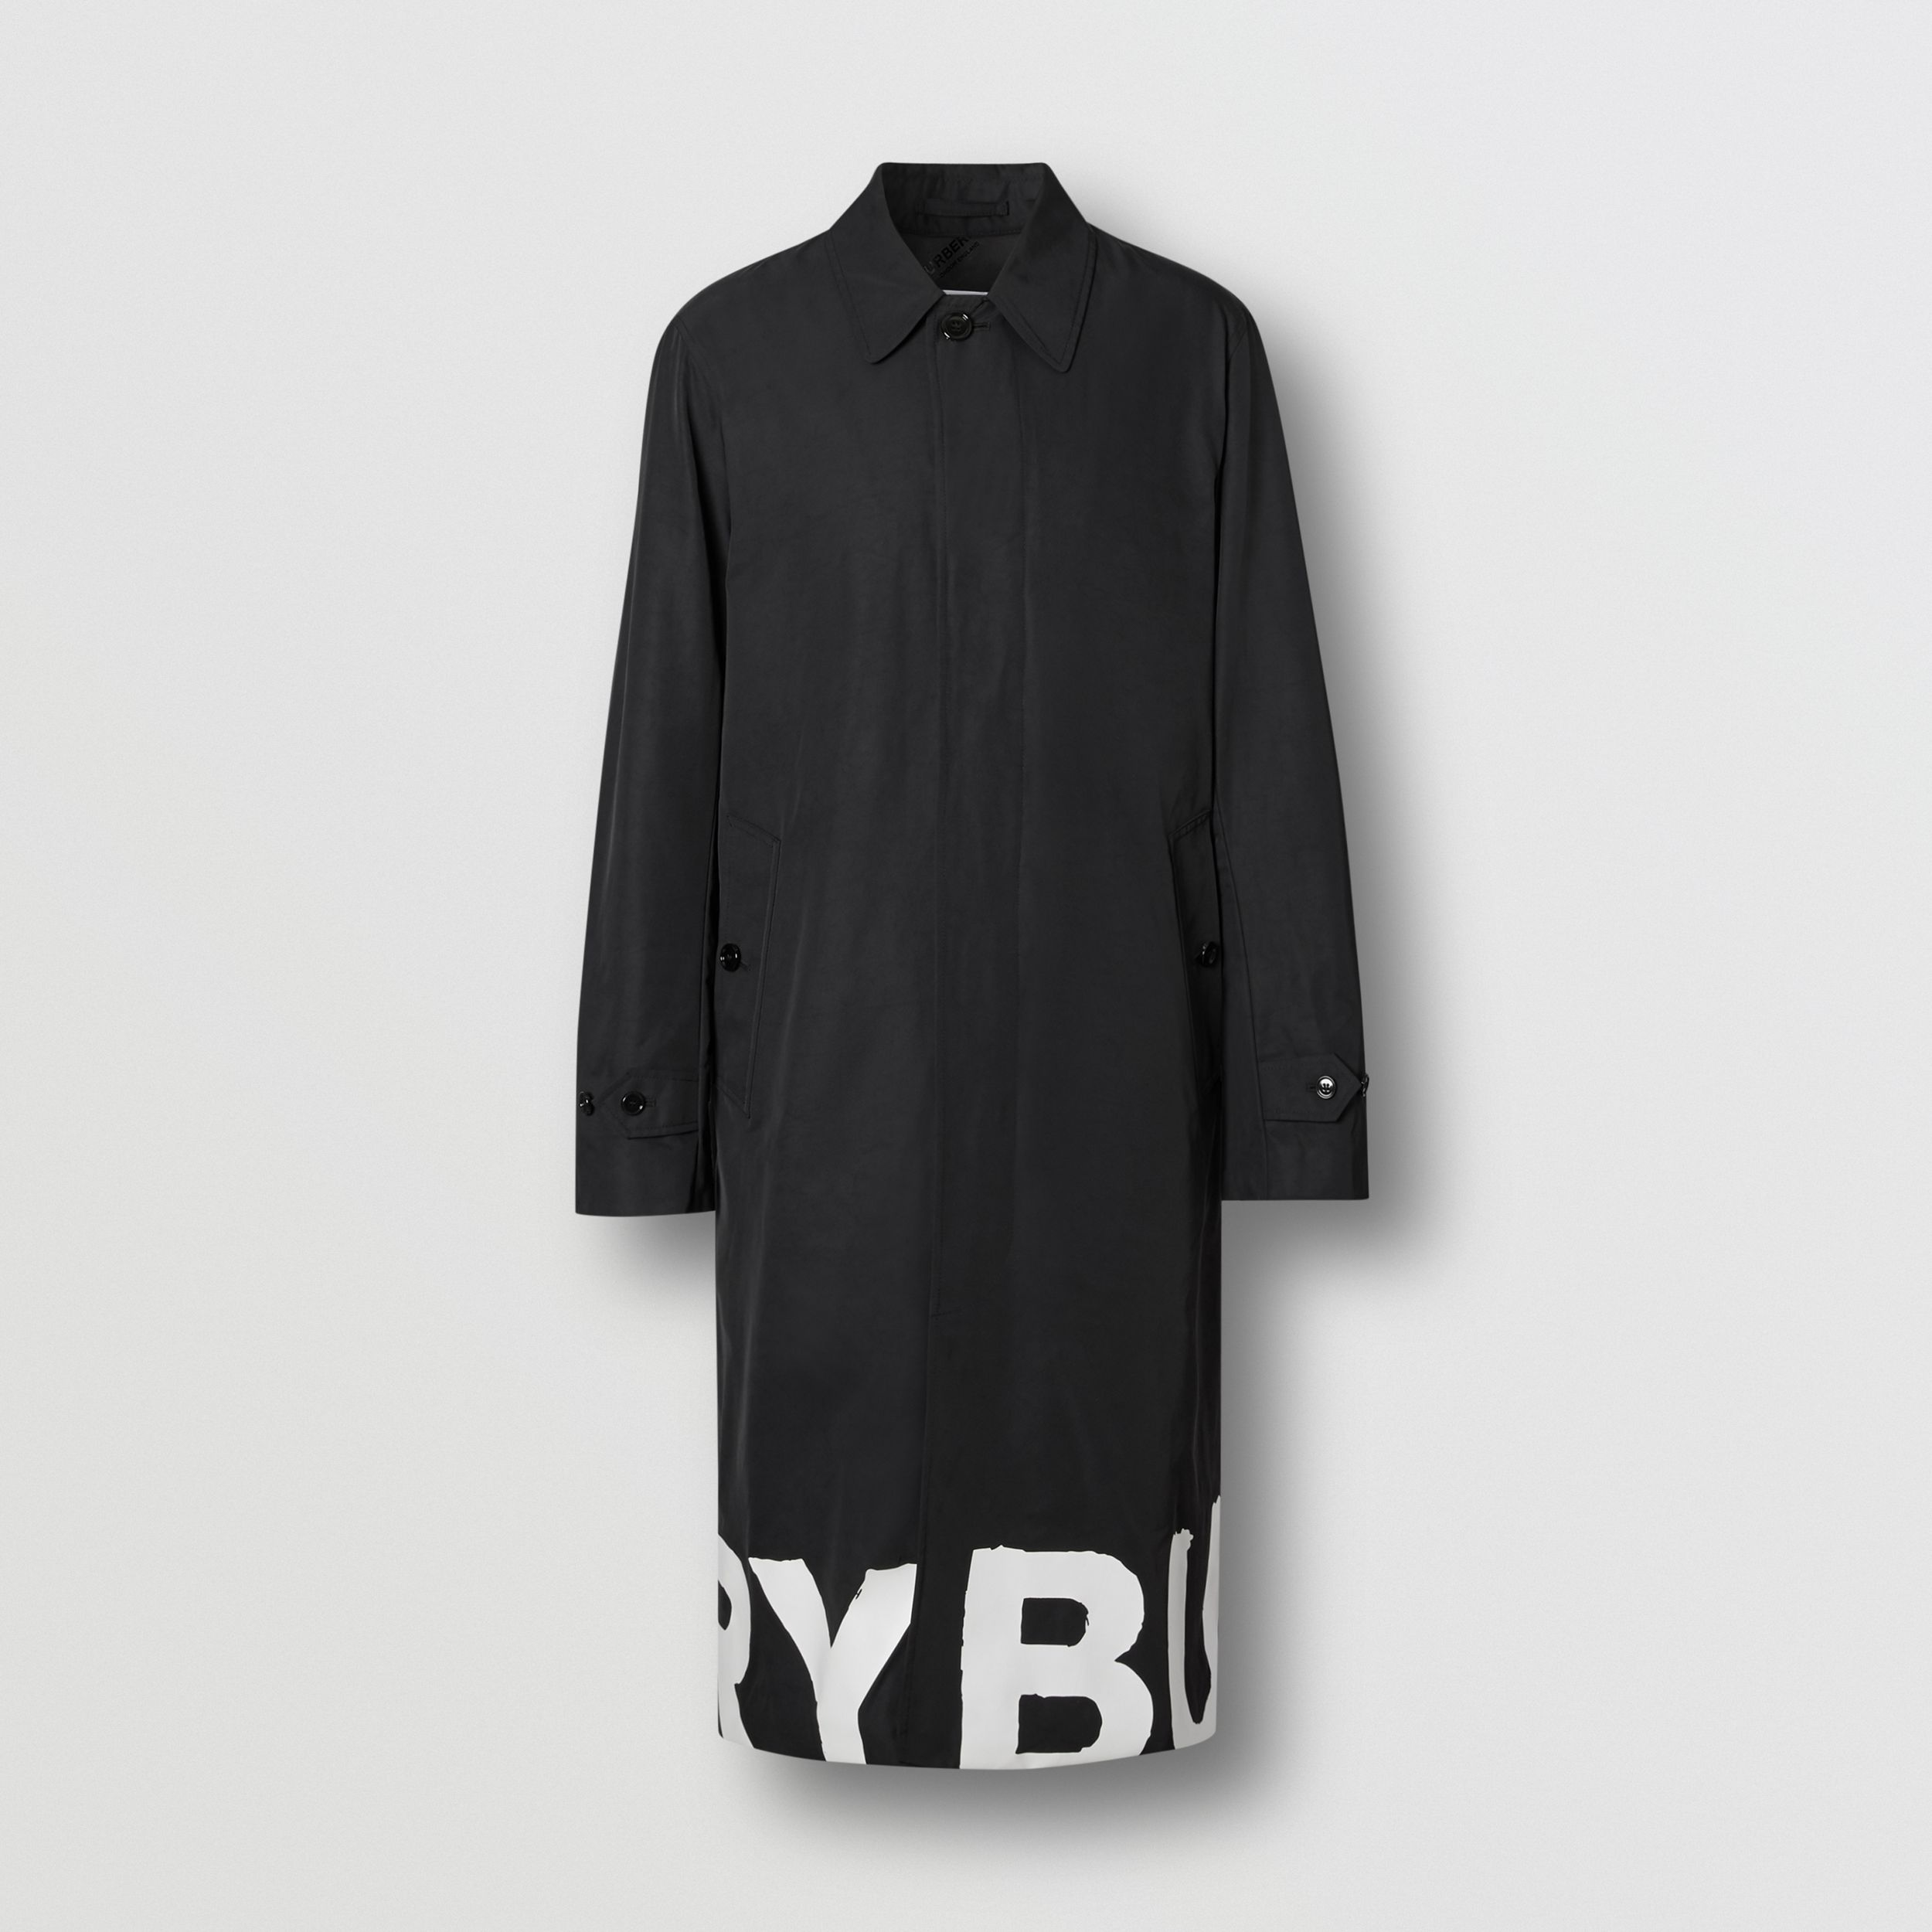 Logo Print Nylon Car Coat in Black - Men | Burberry - 4